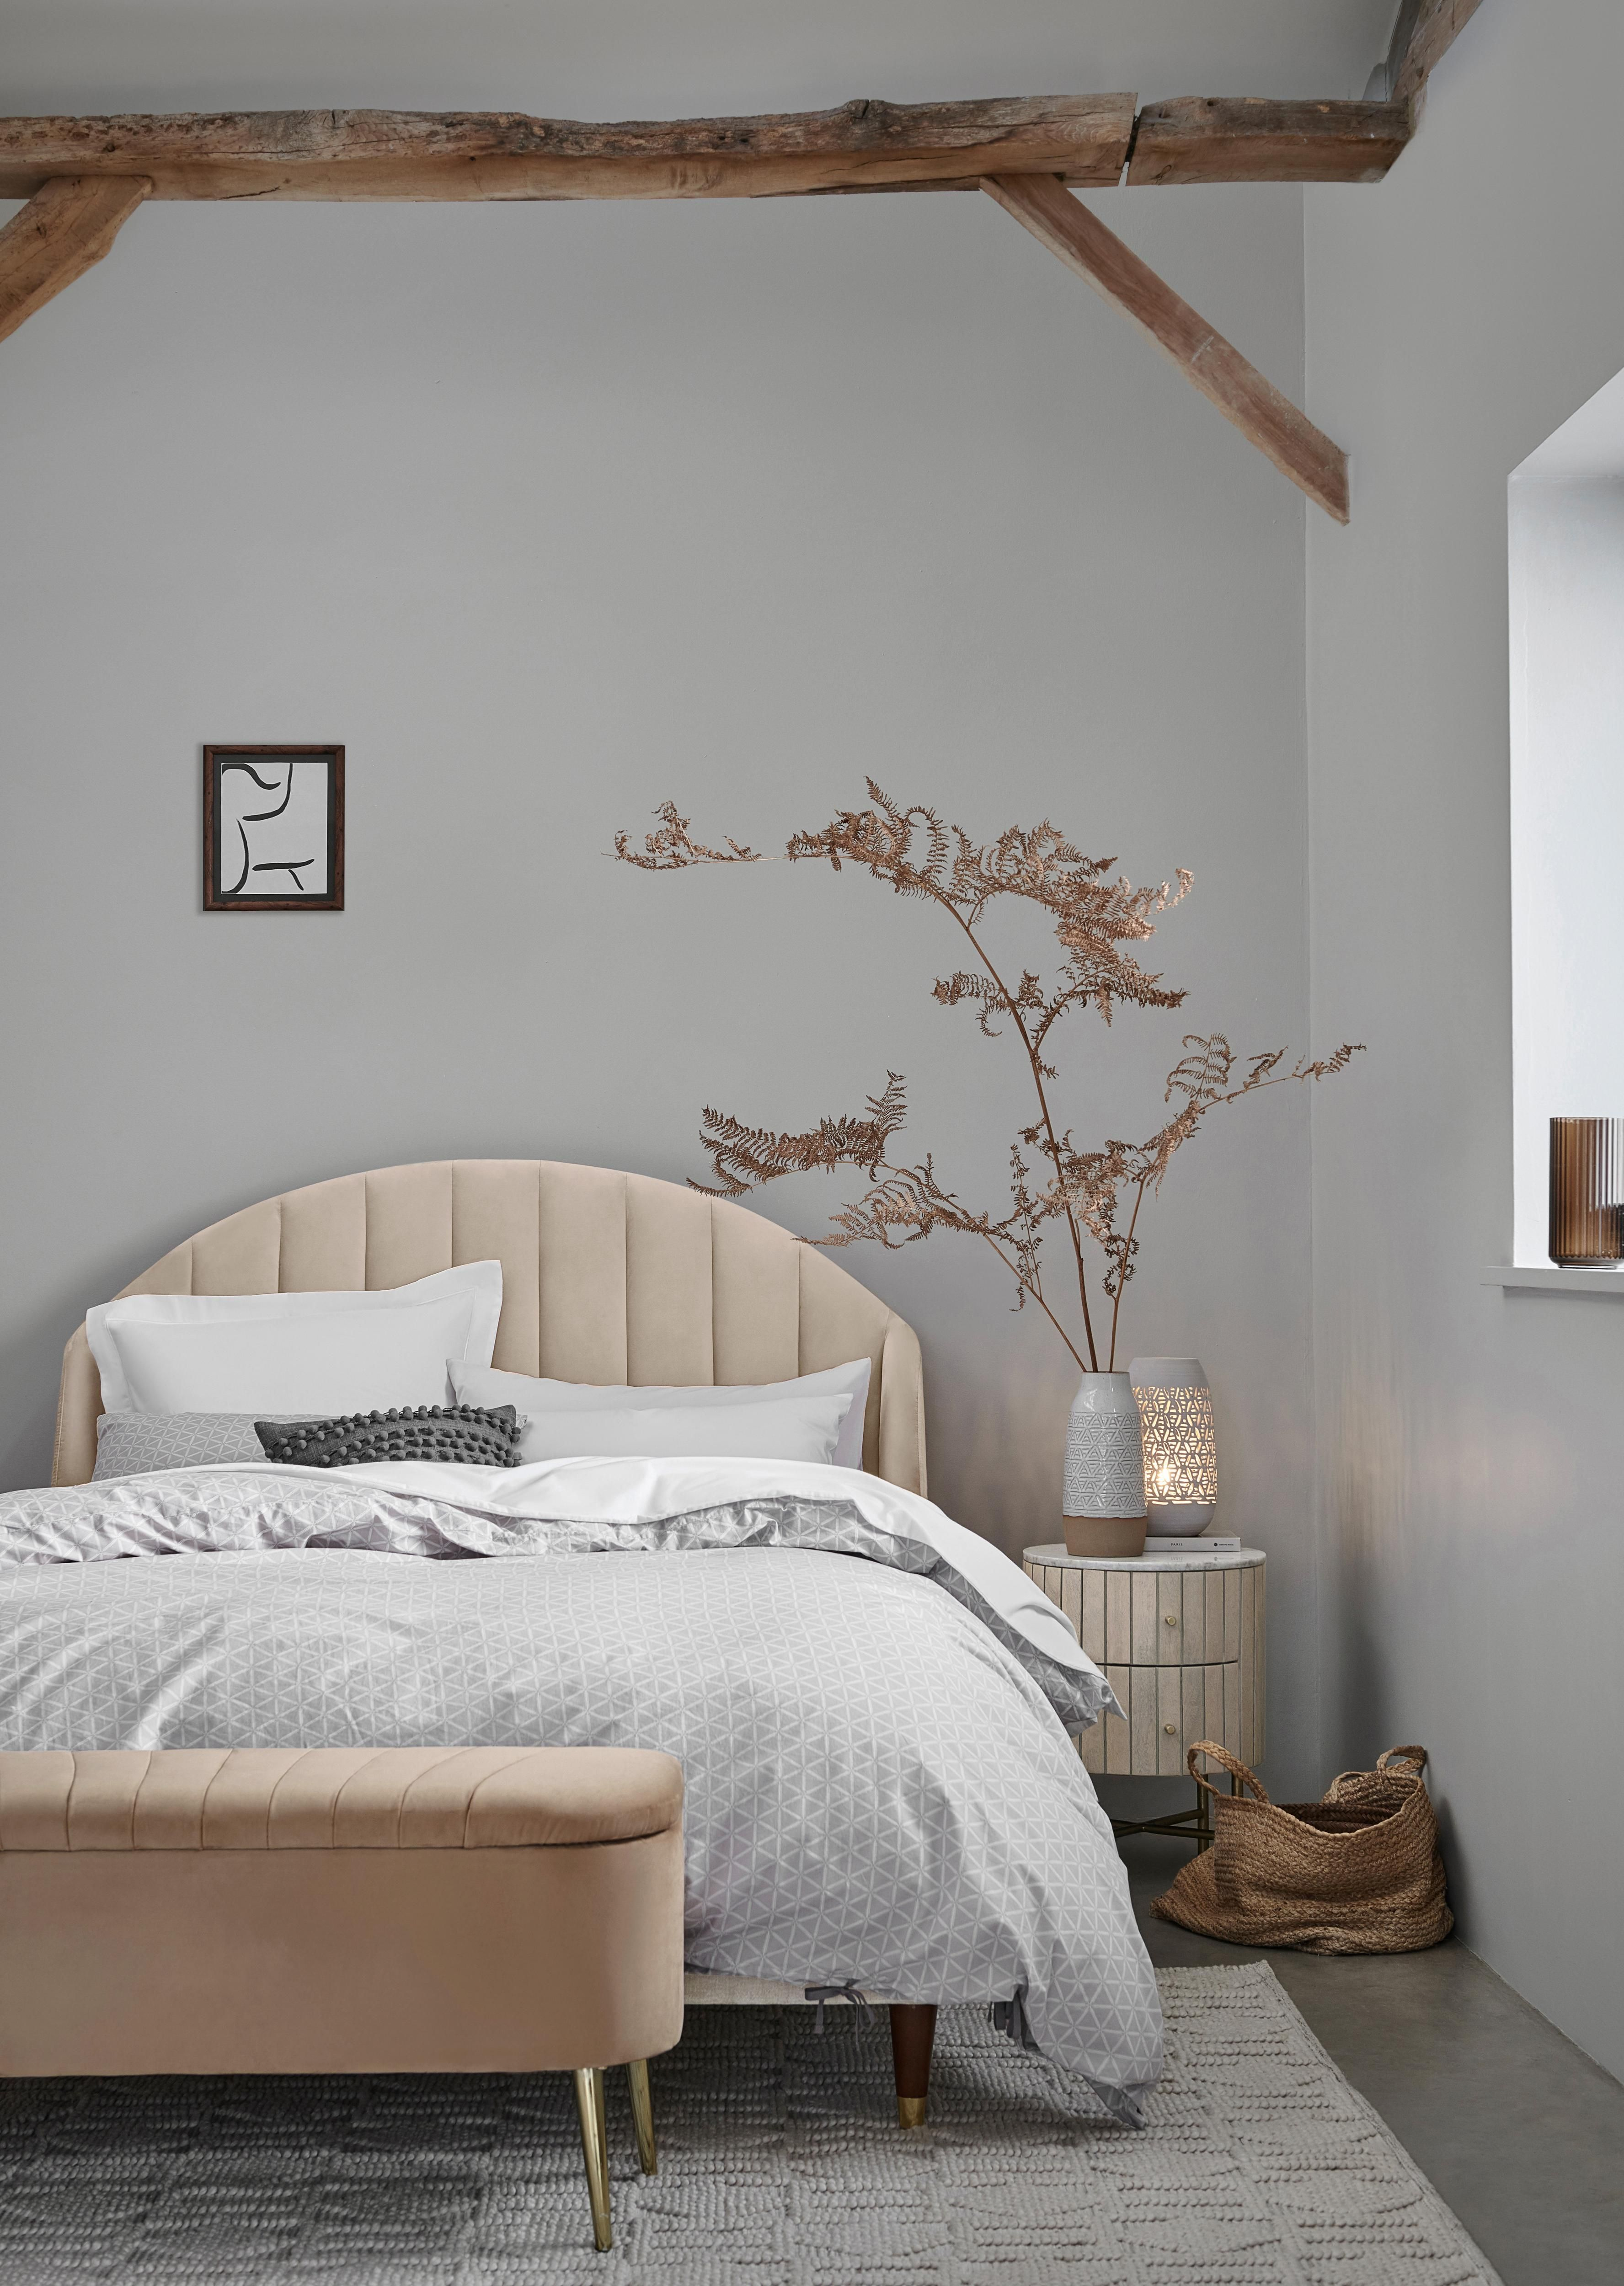 Let these rooms inspire you to go blue. 5 Bedroom Decor Trends To Embrace Bedroom Ideas